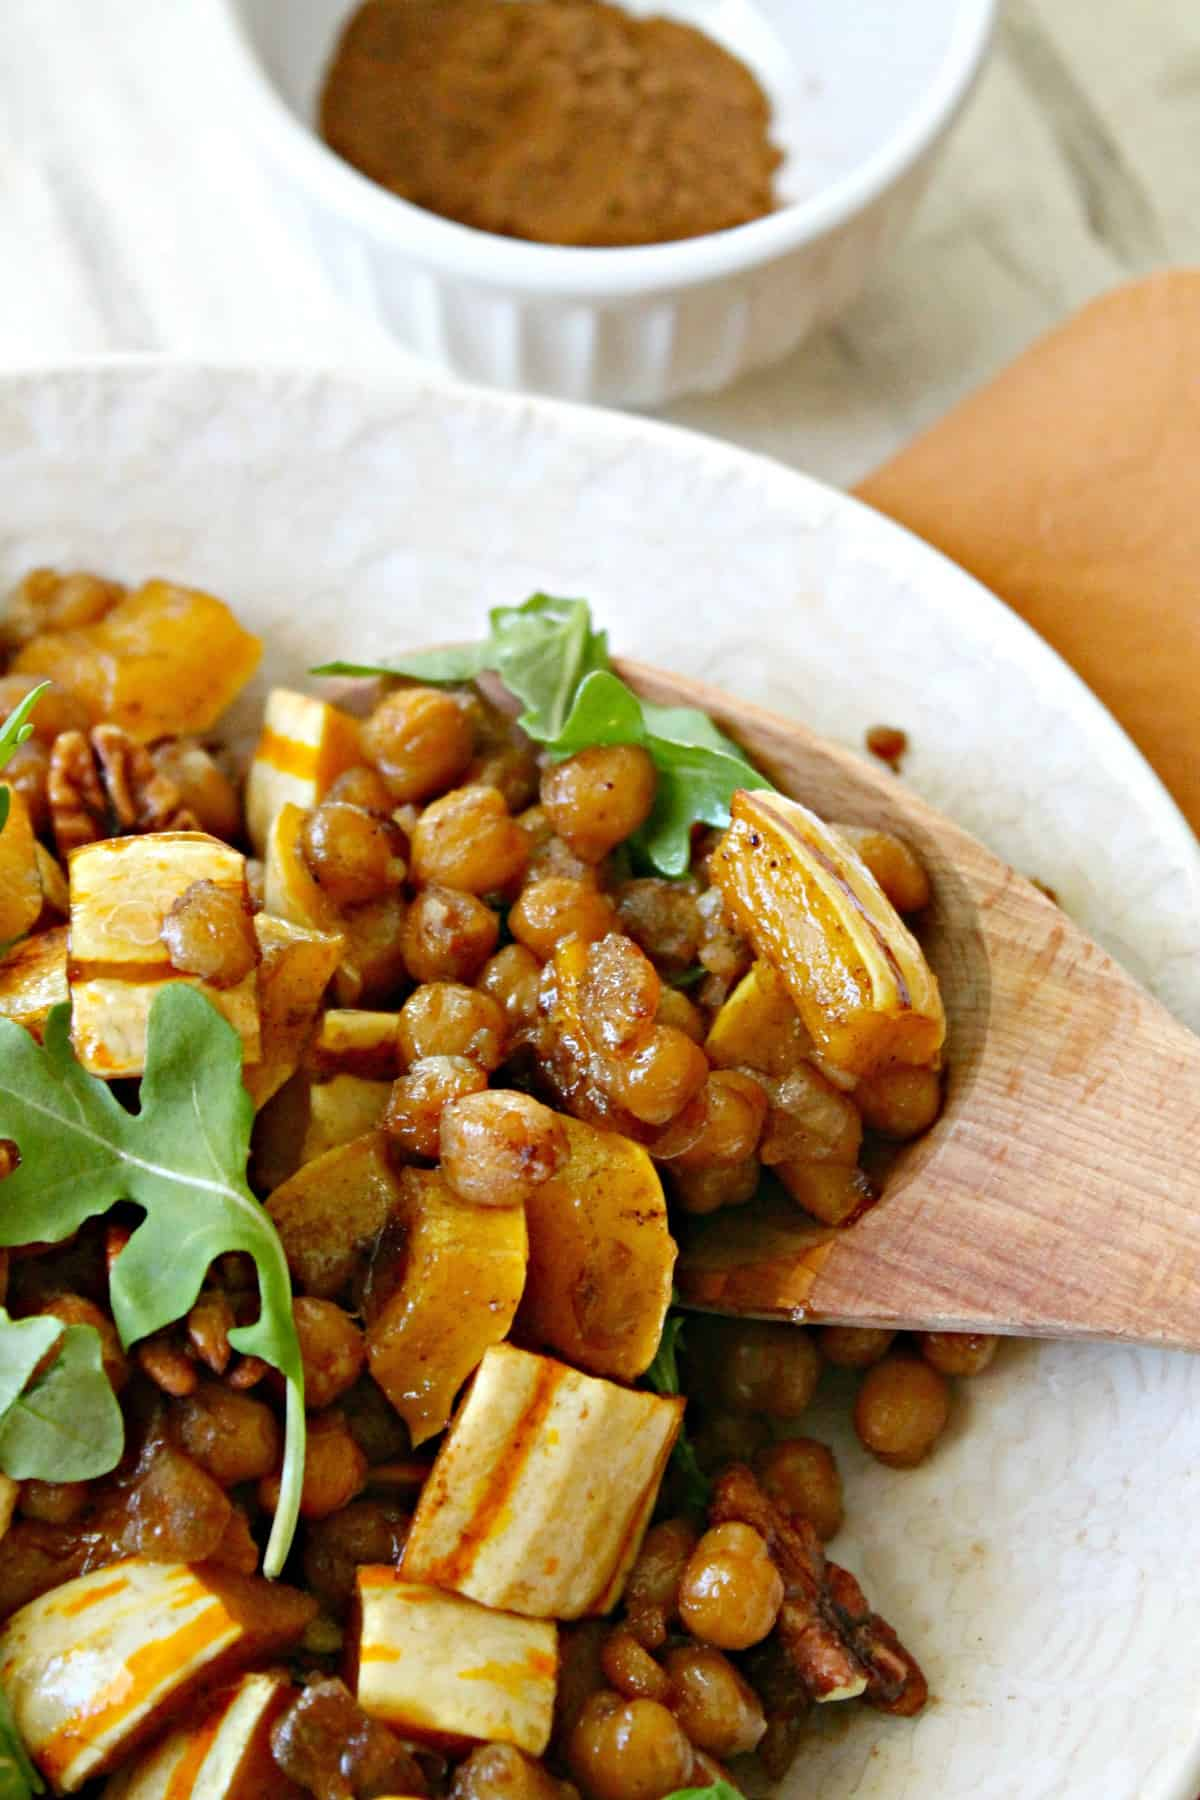 Pumpkin-Spiced Roasted Squash & Chickpea Salad! Need something a little different to serve alongside your holiday staples? This warm salad dish is sweet, savory and filled with the flavors and aromas of the holiday season! Delicata squash is having a moment. I noticed its popularity on the rise last fall, and I've continued to see more and more people using it lately. I never jumped on the bandwagon last year, but when I started seeing them piled into pretty mounds at Trader Joe's at the start of autumn this year, I figured it couldn't hurt to toss a few in my cart and experiment with them at home. Now that I've cooked with them several times, I don't know why it took me so long to get on board! If you like squash but dread dealing with prepping it, then Delicata is the perfect variety for you. Unlike its tough-skinned counterparts, there is no need to peel Delicata squash which makes it a huge time saver. Since it's typically smaller than butternut squash and not quite as wide as an acorn squash, it's also much easier to chop, which I deeply appreciate since I can't tell you how many times I've feared for my digits. {This is also the reason butternut squash is one of the only vegetables I buy pre-chopped -- unharmed fingers are totally worth the convenience charge, if you ask me.} Anyway, I bought some Delicata squash a few weeks ago to serve as a side dish when I had my family over for dinner, and everyone raved about how I prepared it so much that I decided I'd work on a Thanksgiving-worthy recipe to share here using the gourd-du-jour. This Pumpkin-Spiced Delicata Squash & Chickpea Salad is what I came up with! I know I throw this phrase around a lot, but it is SO EASY to make, especially since that Delicata squash is so much less difficult than the other kinds. You just chop, drop and toss everything with a mixture of oil, maple syrup and seasoning {salt and pumpkin spice blend to be exact} on one sheet pan, and let the oven do the rest of the work. The maple sy